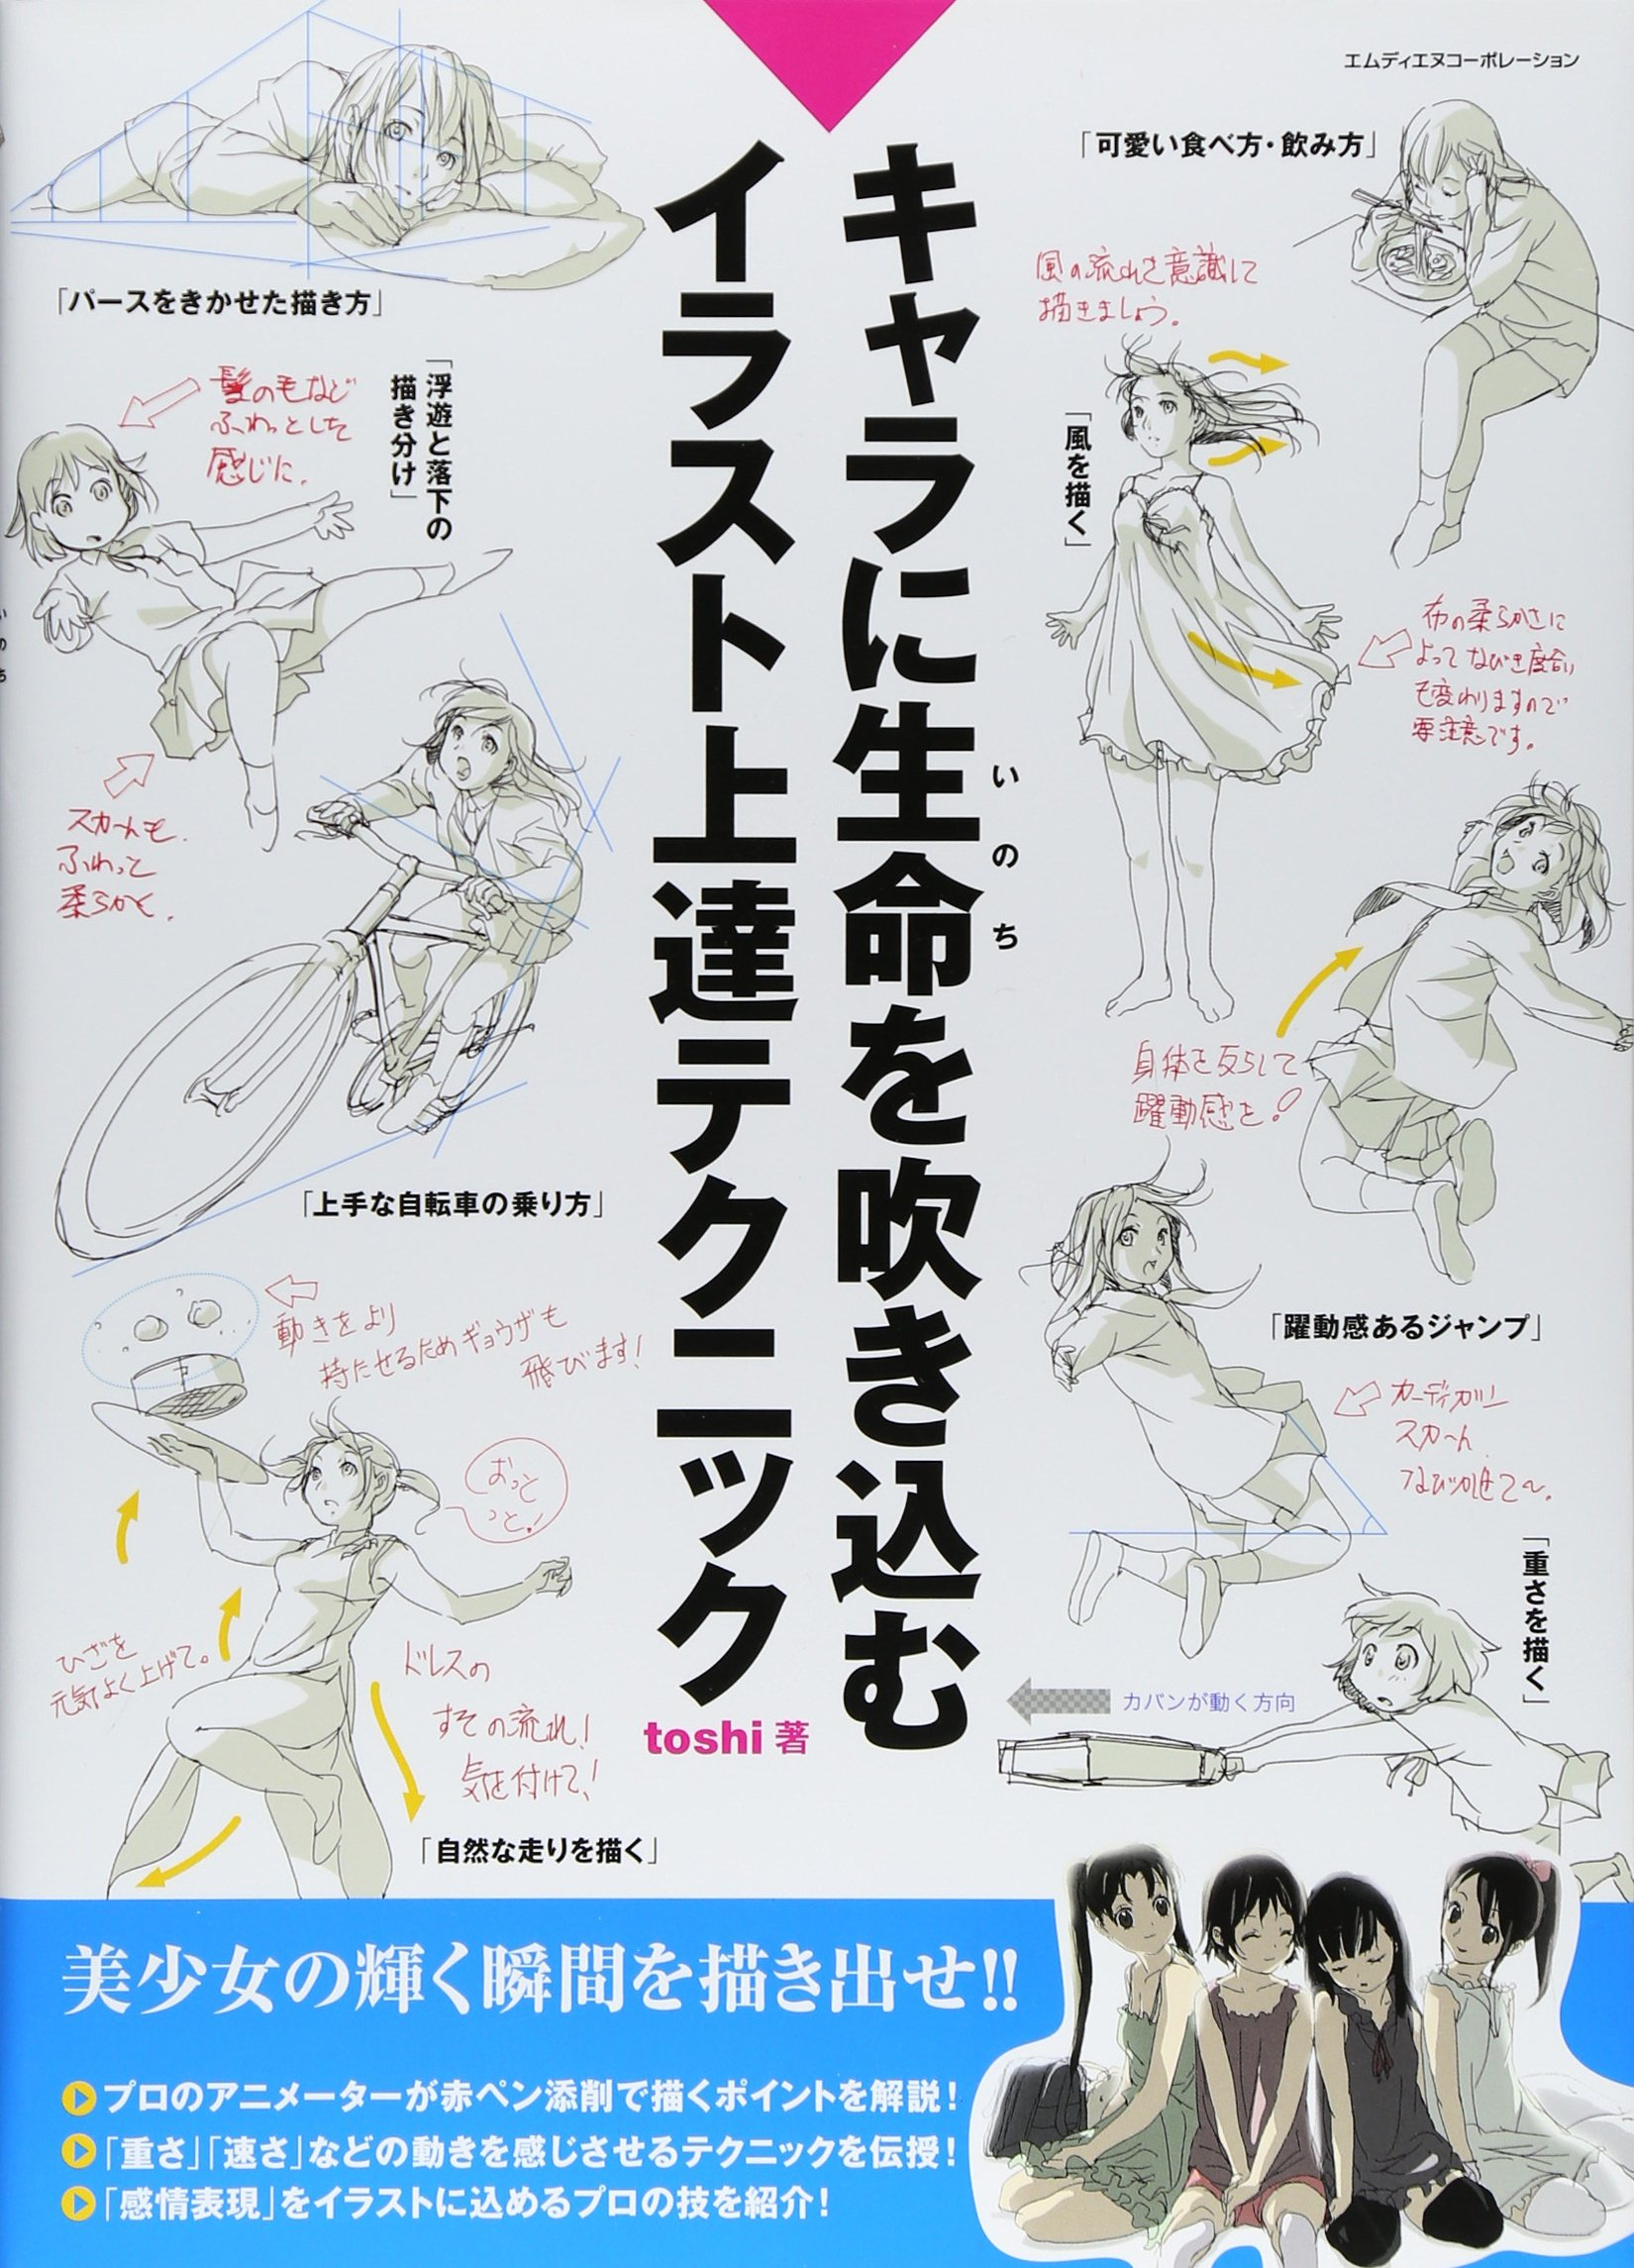 How to draw illustration Disassembly Book Manga Anime Technique with PDF Japan